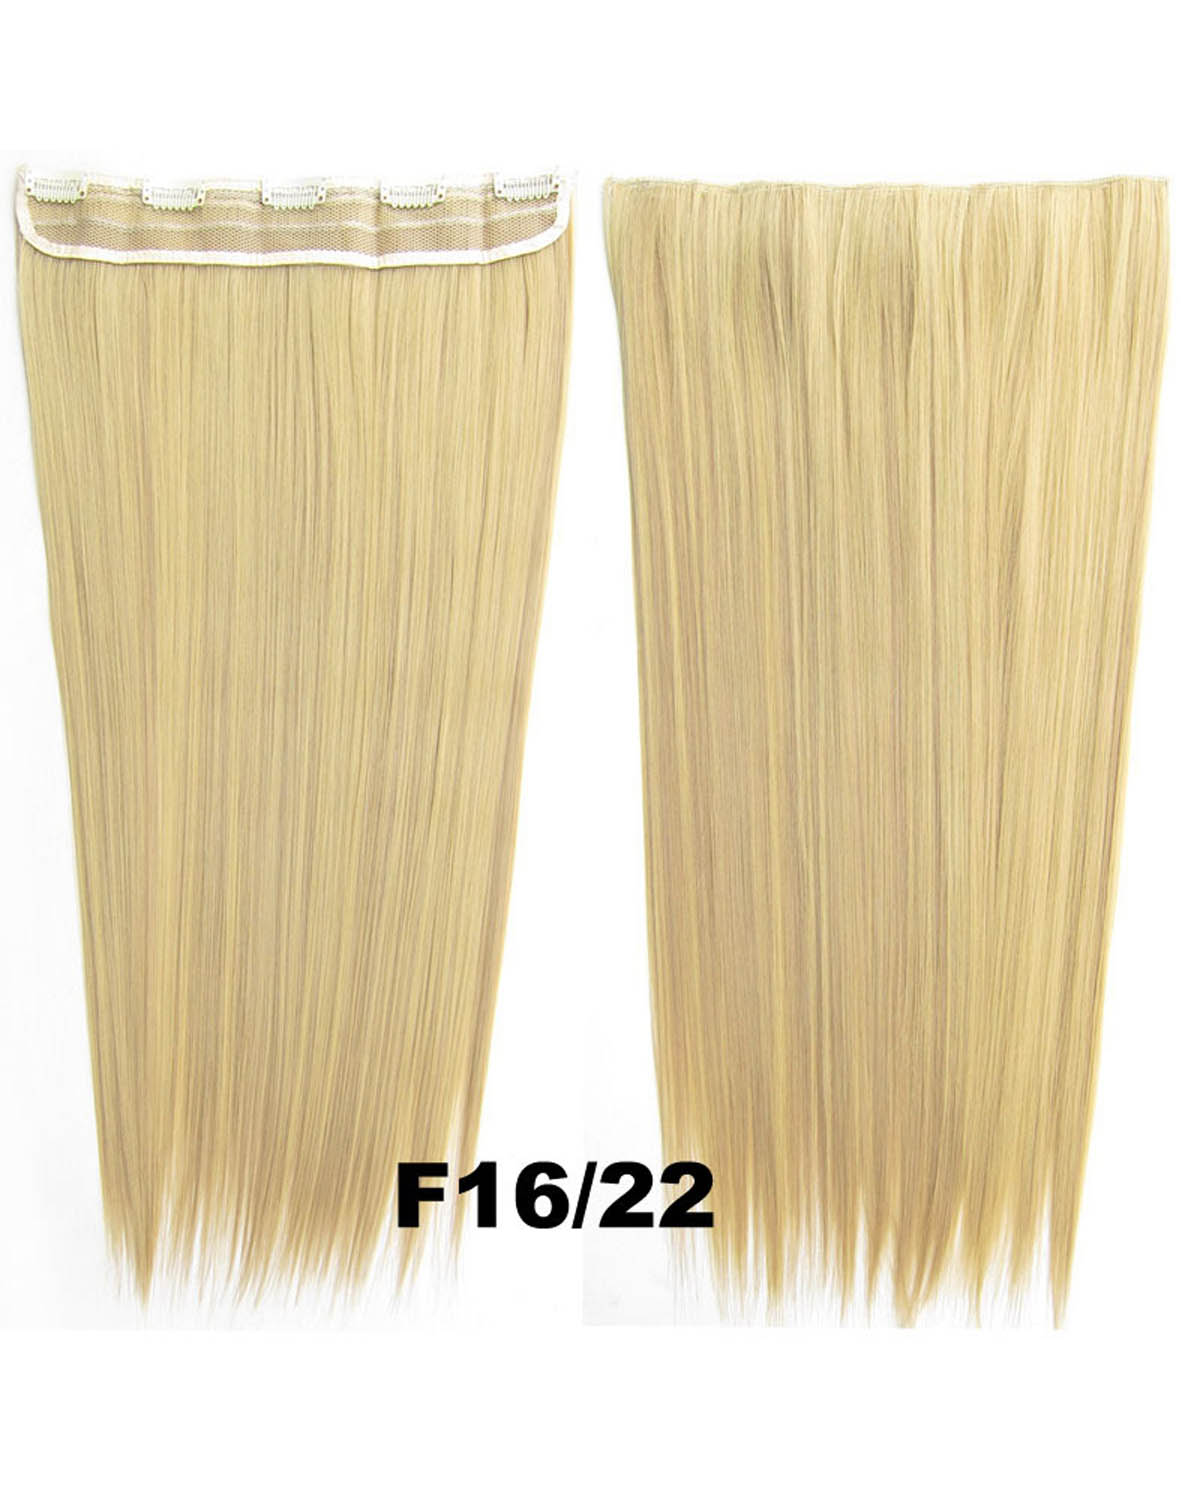 24 inch Lady Shining Straight and Long One Piece 5 Clips Clip in Synthetic Hair Extension  F16/22